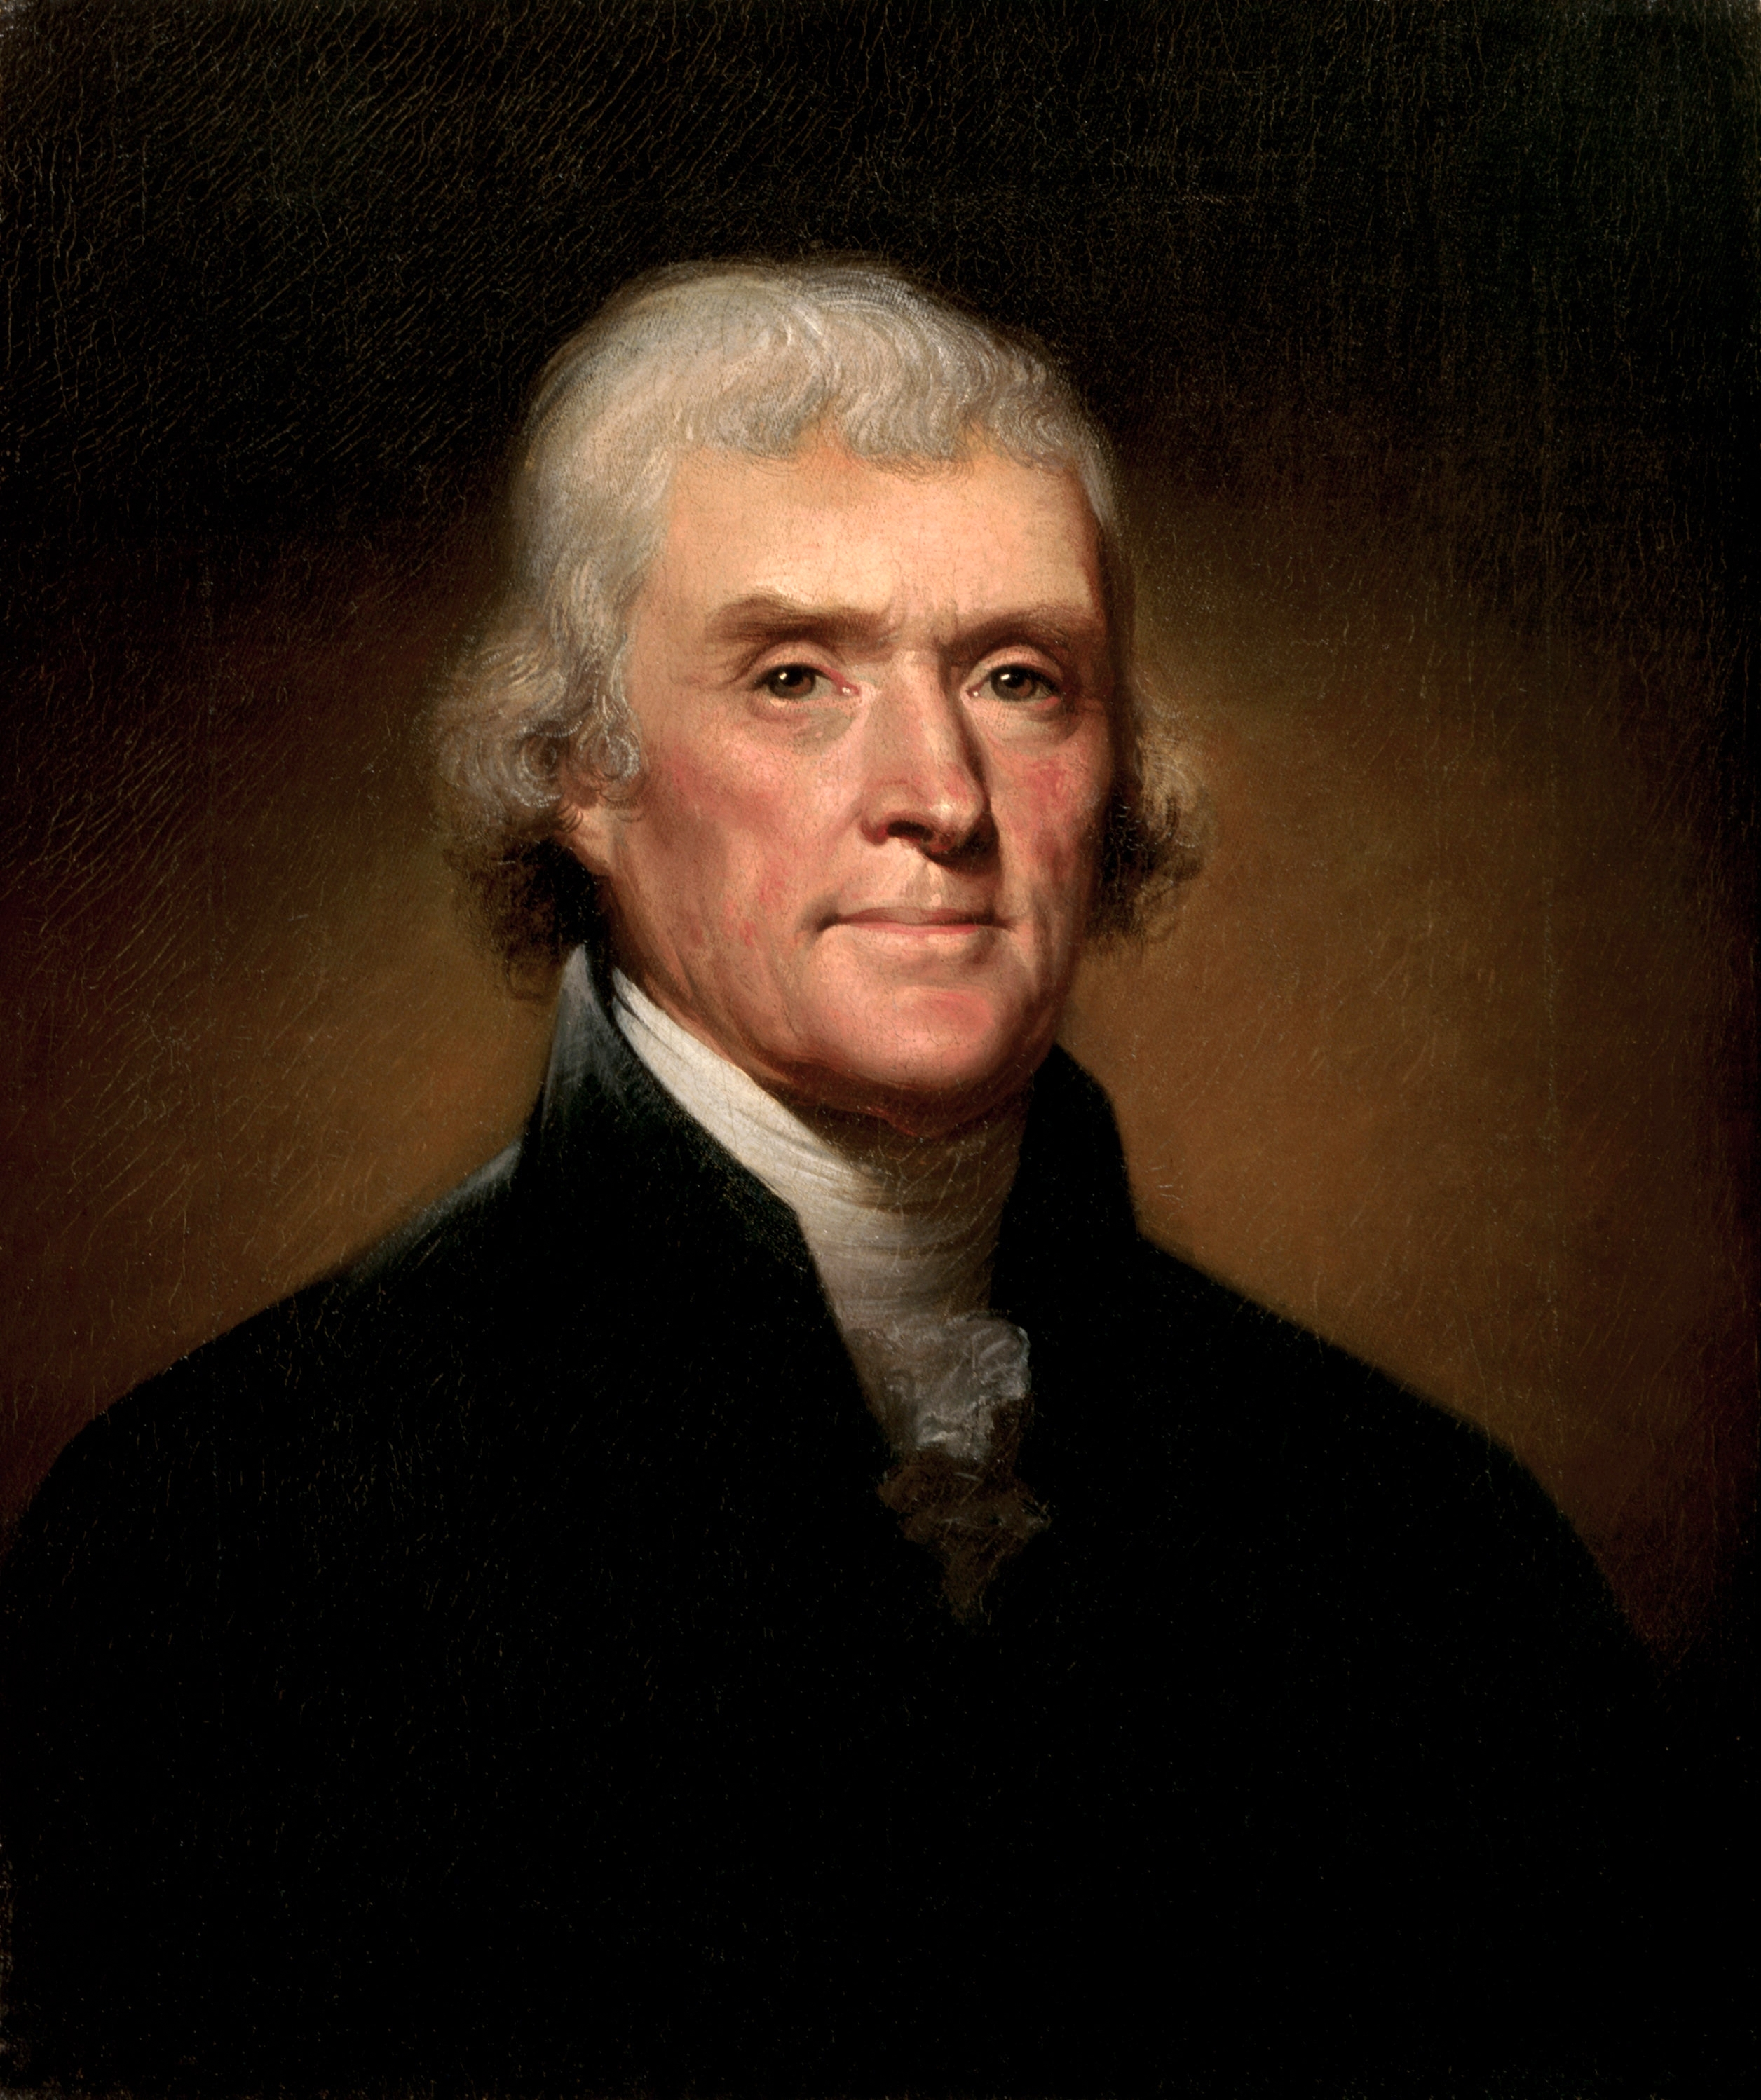 File:Thomas Jefferson by Rembrandt Peale, 1800.jpg - Wikipedia